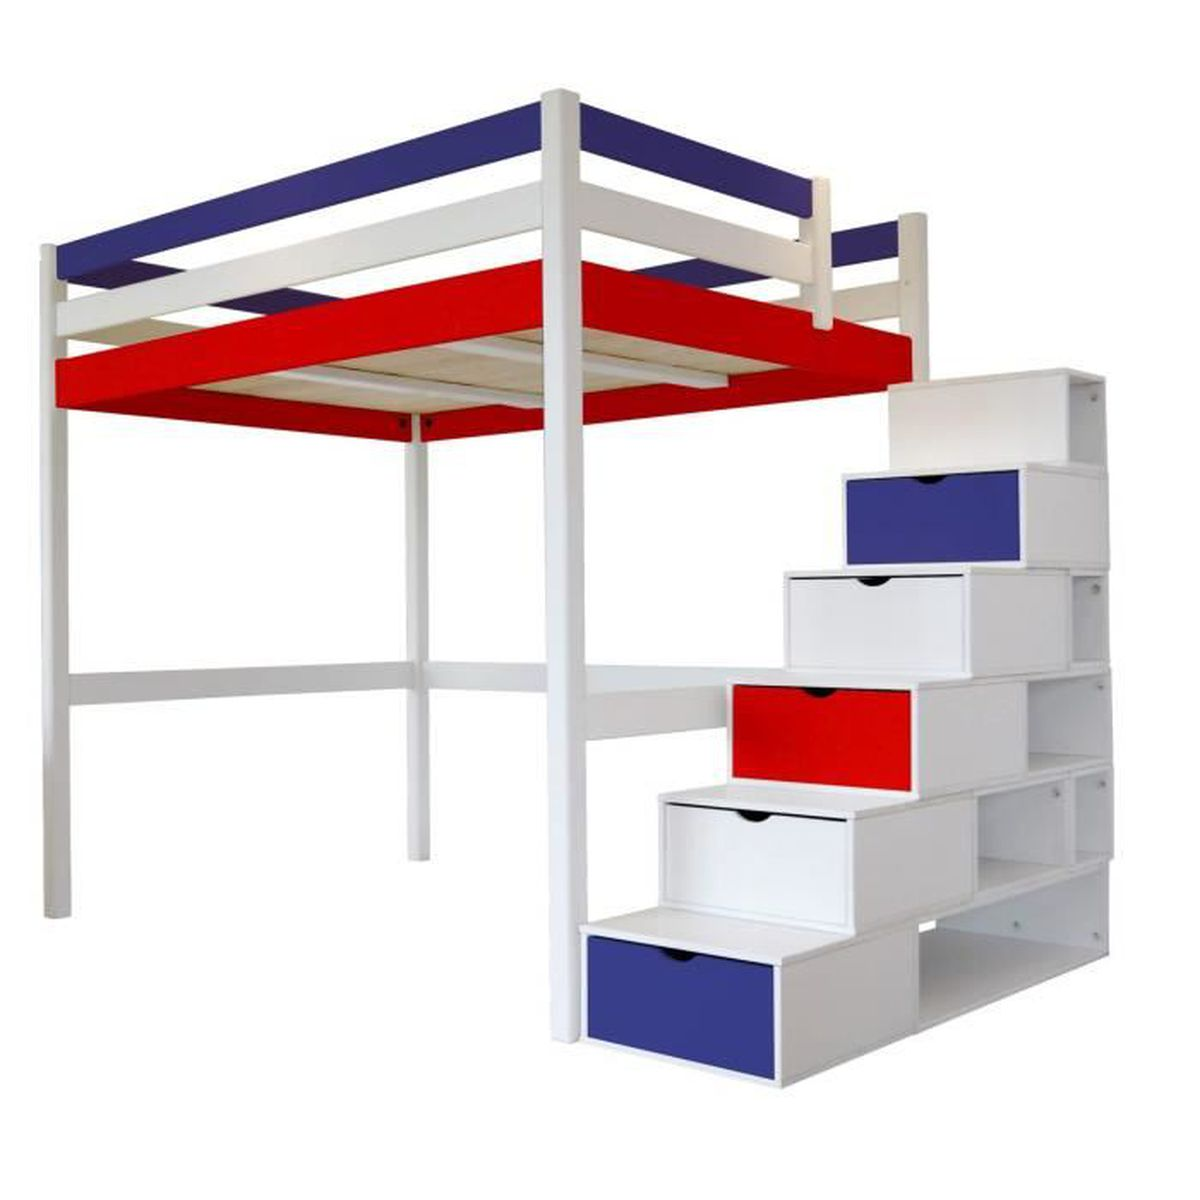 lit mezzanine sylvia avec escalier cube bois bleu blanc rouge 160x200 achat vente lit. Black Bedroom Furniture Sets. Home Design Ideas